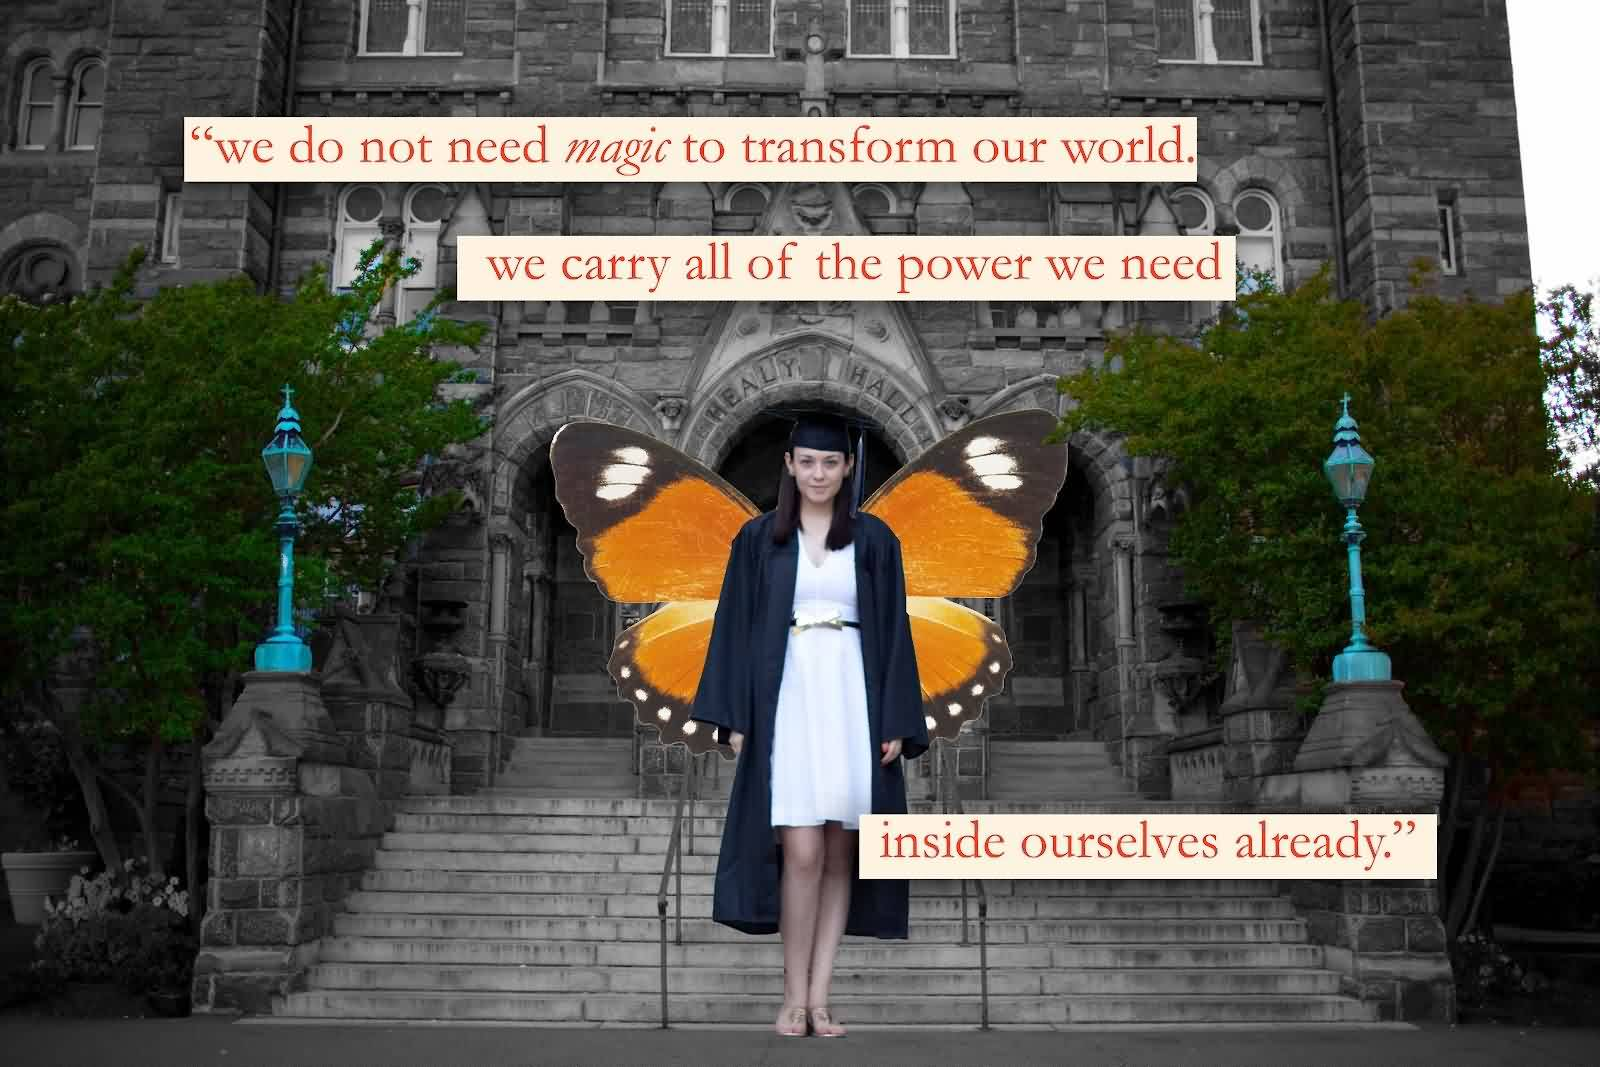 Good Graduation Quotes ~ We Do Not Need Magic To Transform Our World. We Carry All Of The Power We Need Inside Ourselves Already.